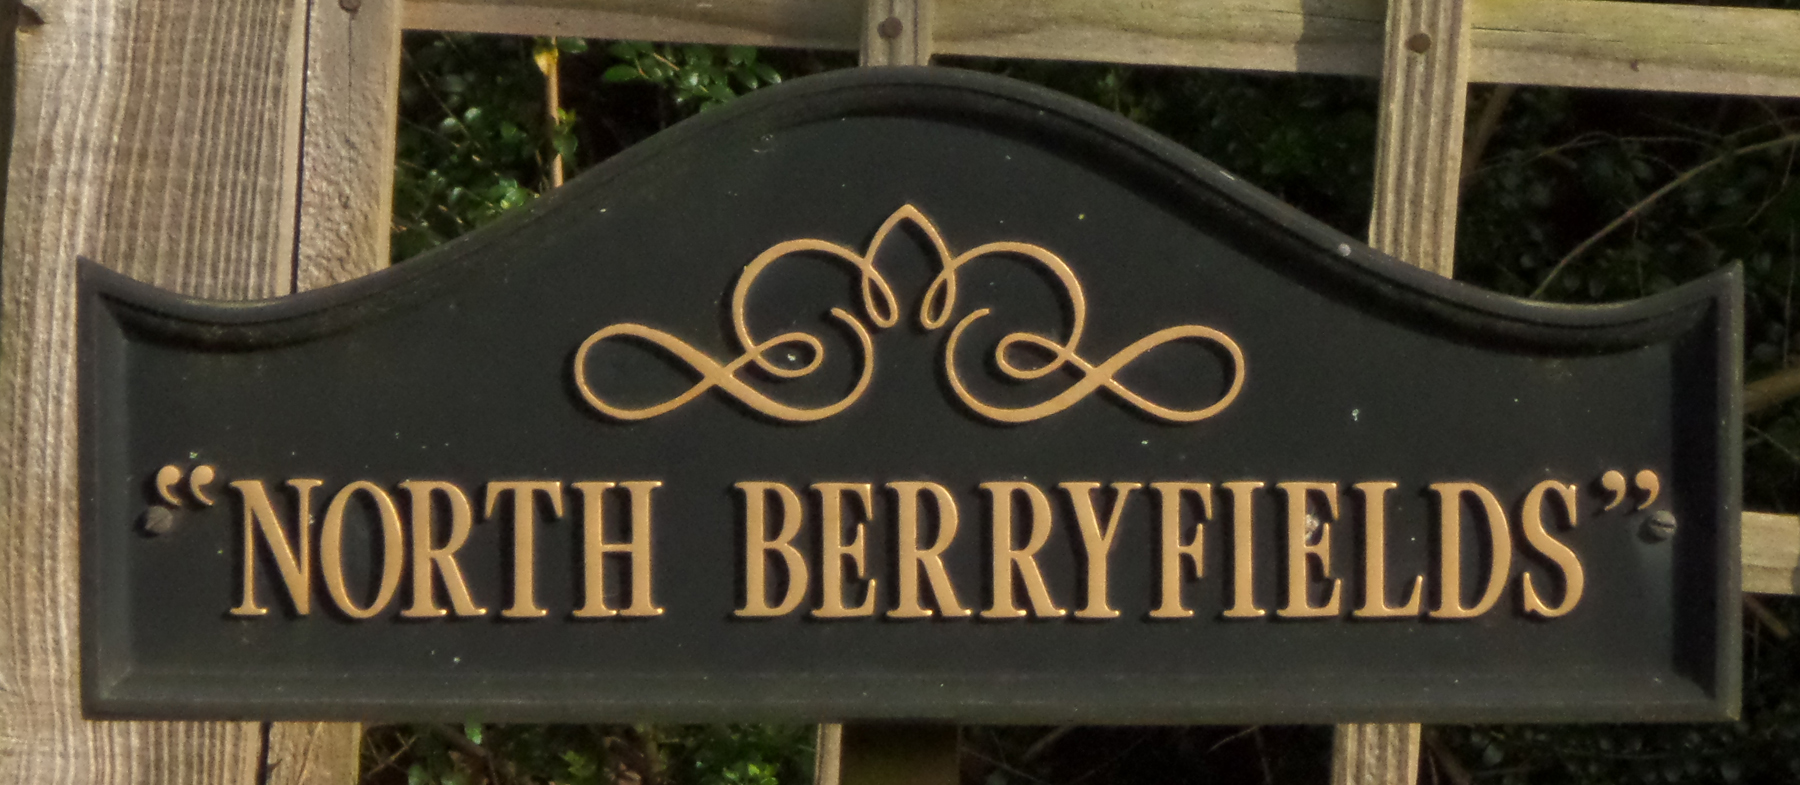 North Berryfields